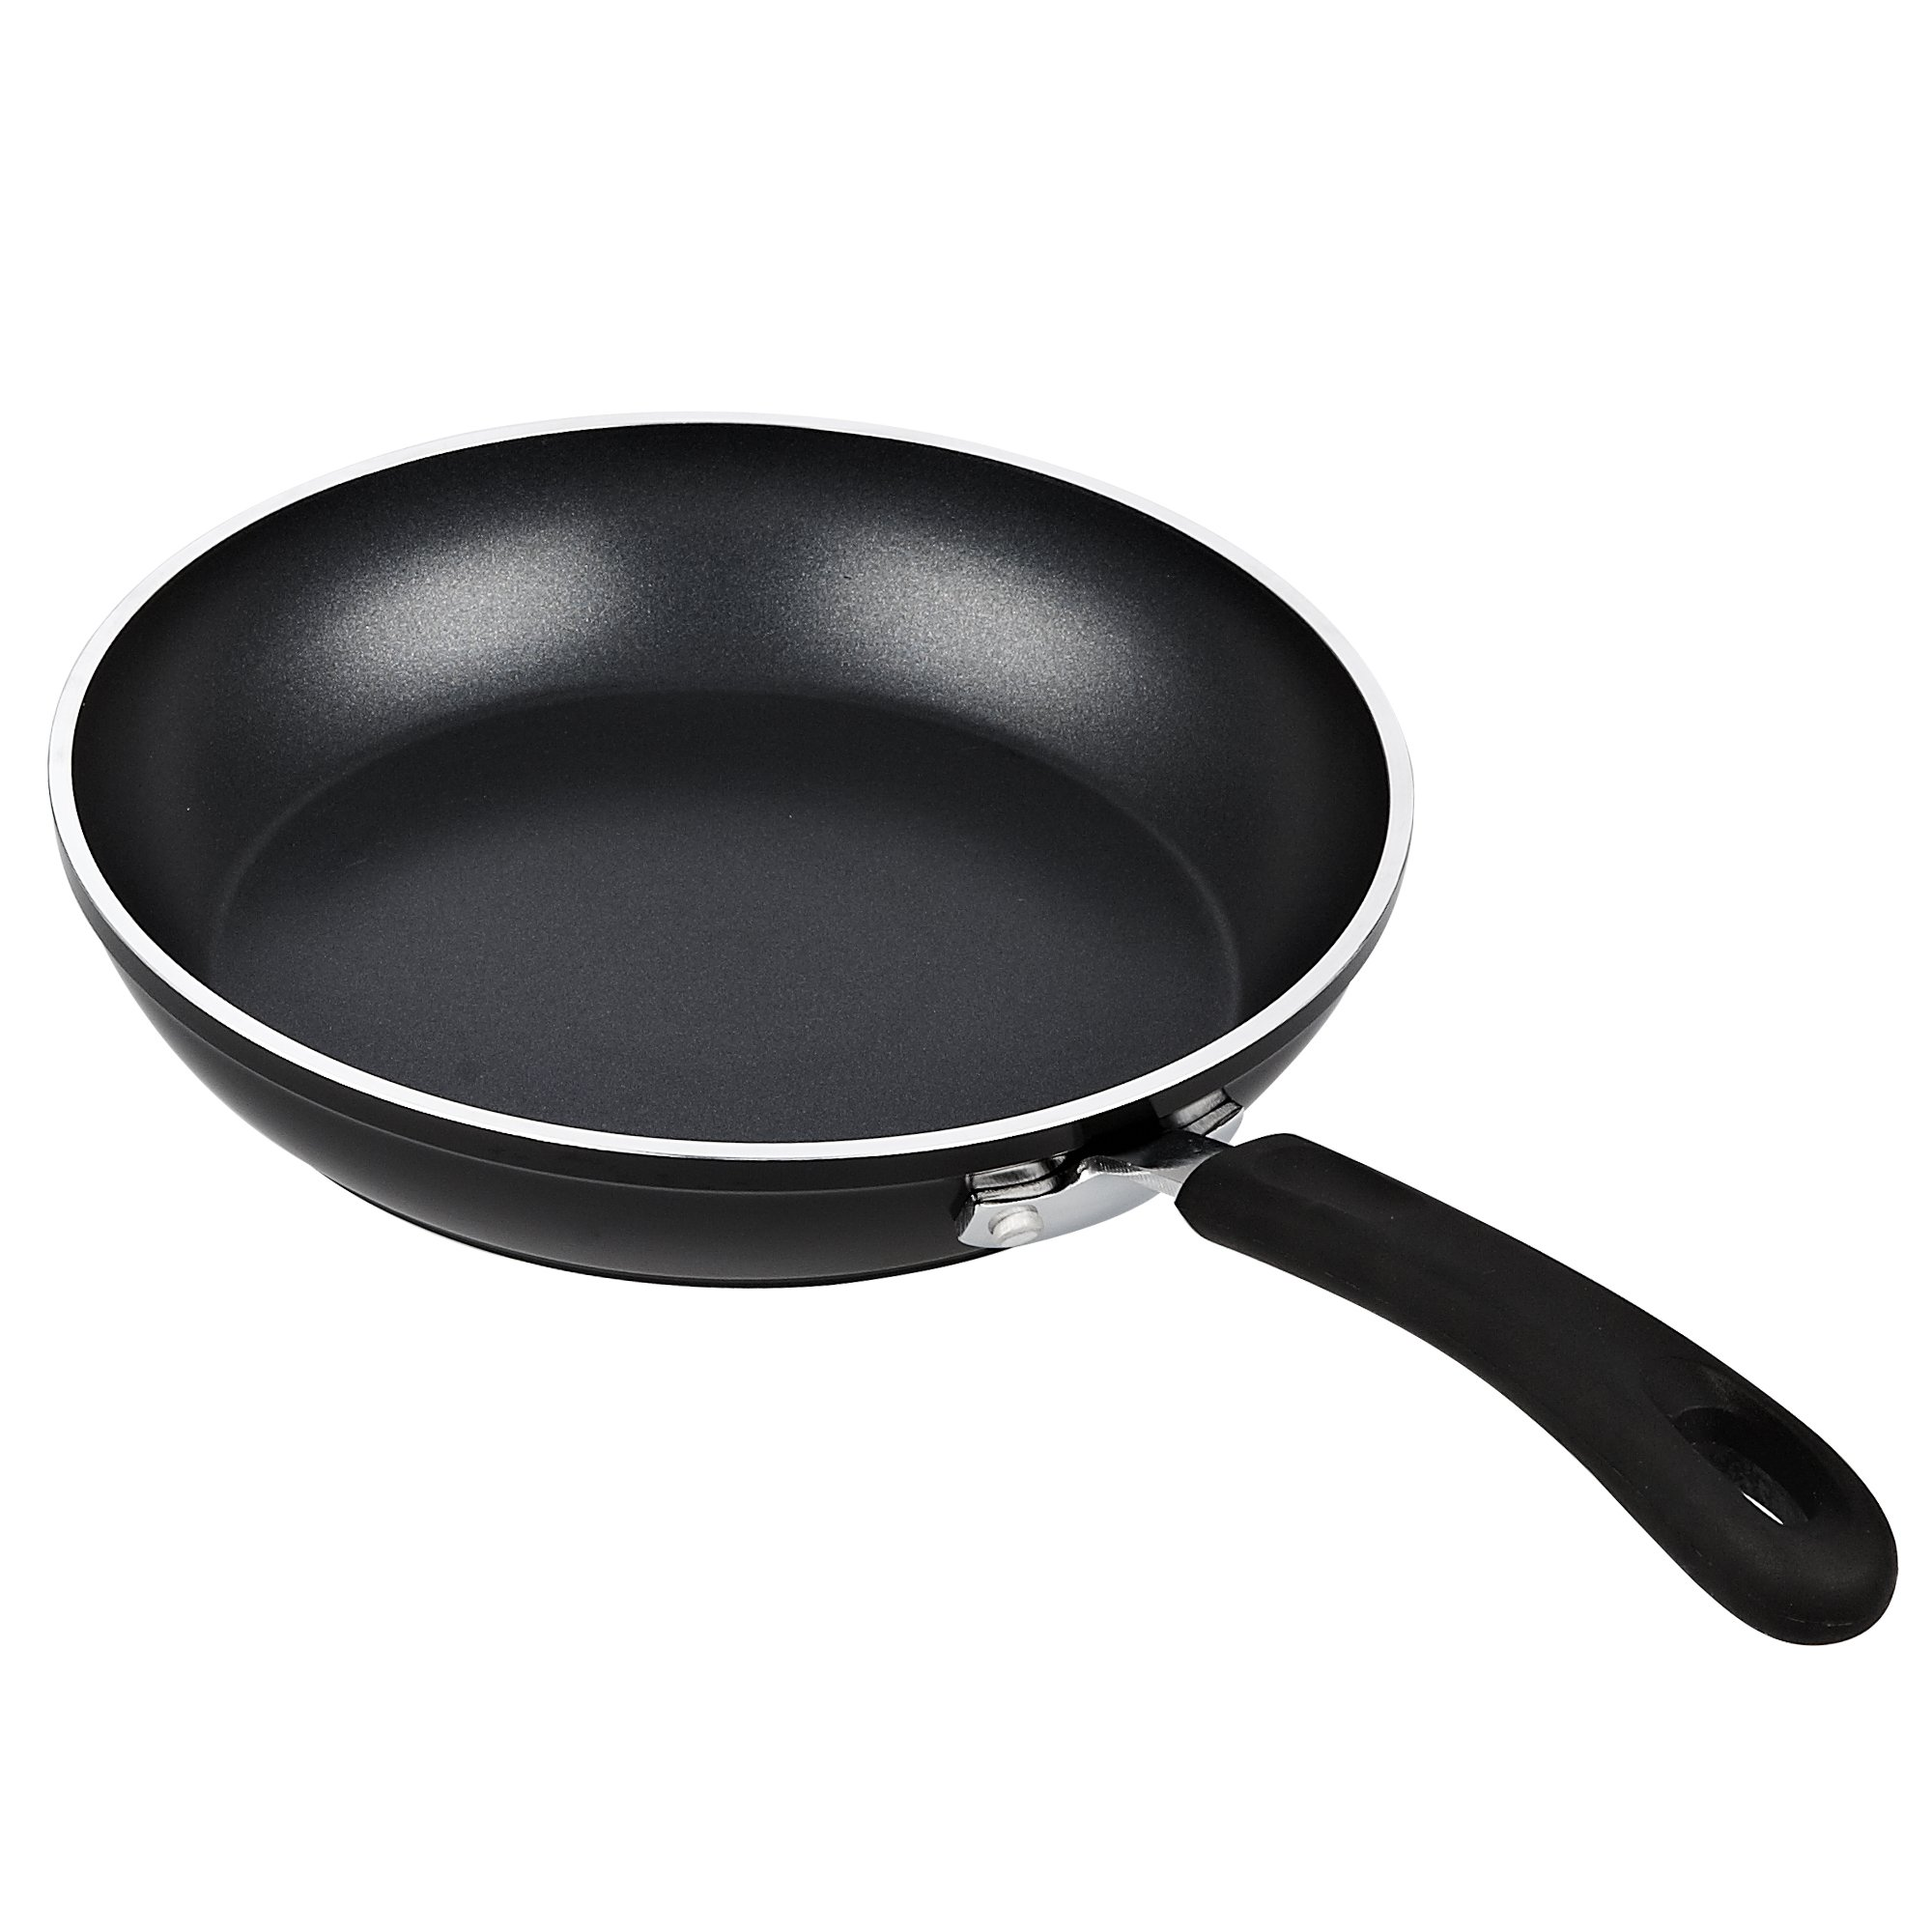 Cook N Home 3 Piece Frying Pan/Saute Pan Set with Non-Stick Coating Induction Compatible Bottom, 8''/10''/12'', Black by Cook N Home (Image #3)